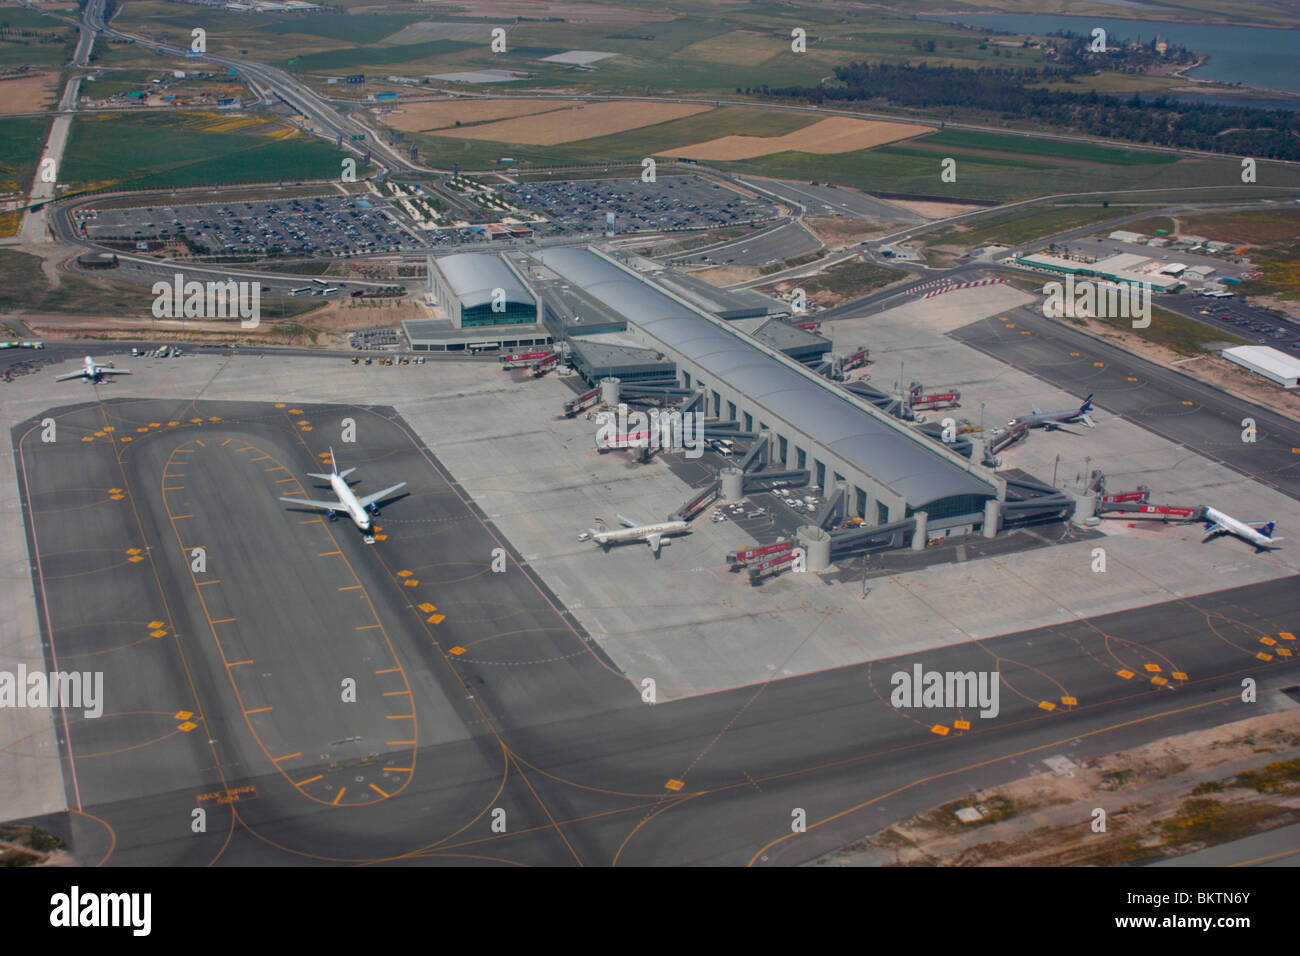 Air transport in the EU. Aerial view of Larnaca Airport, Cyprus, Europe, with the terminal building, apron, taxiways, - Stock Image